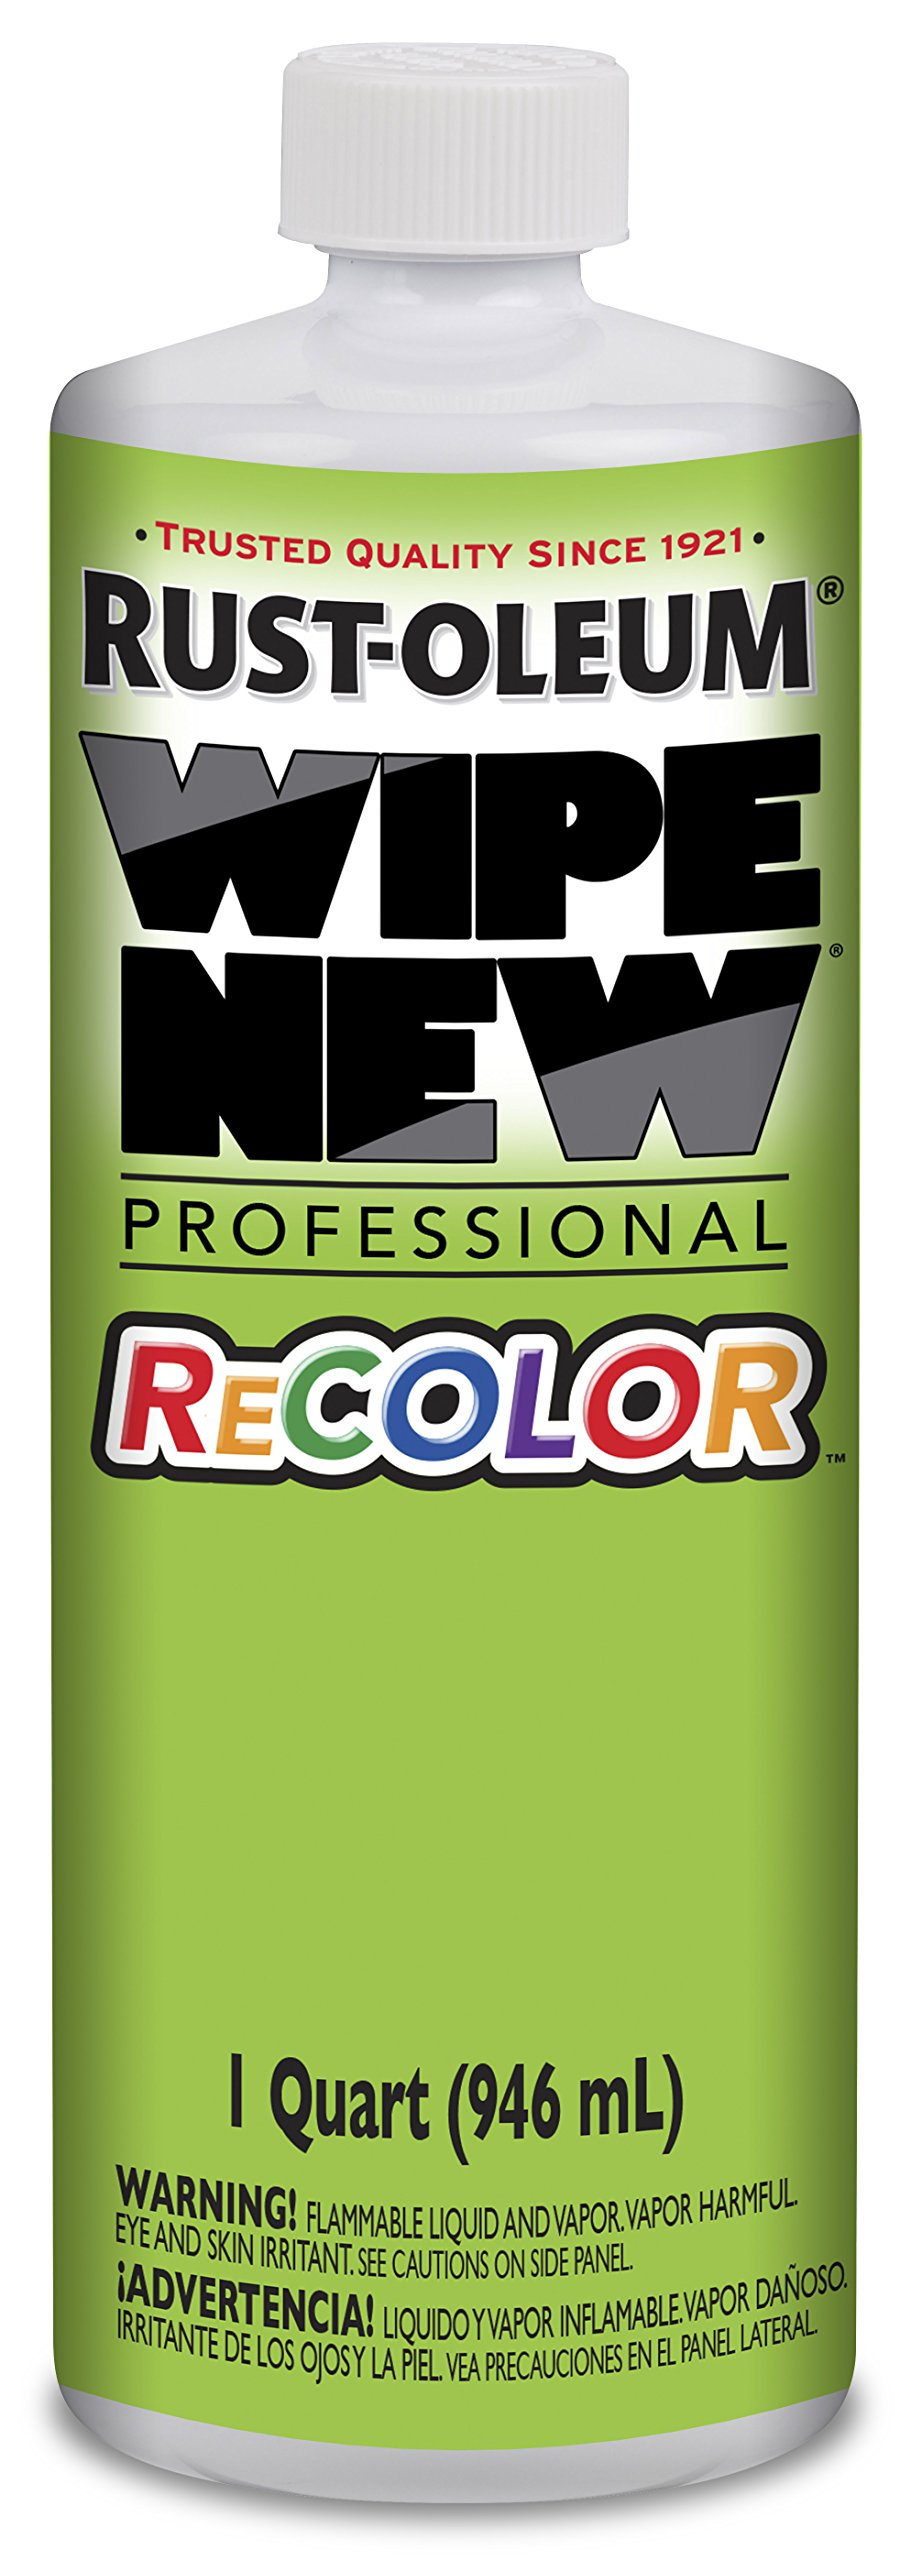 Rust-Oleum 312516 Wipe New Professional Recolor, 32 Oz Qt